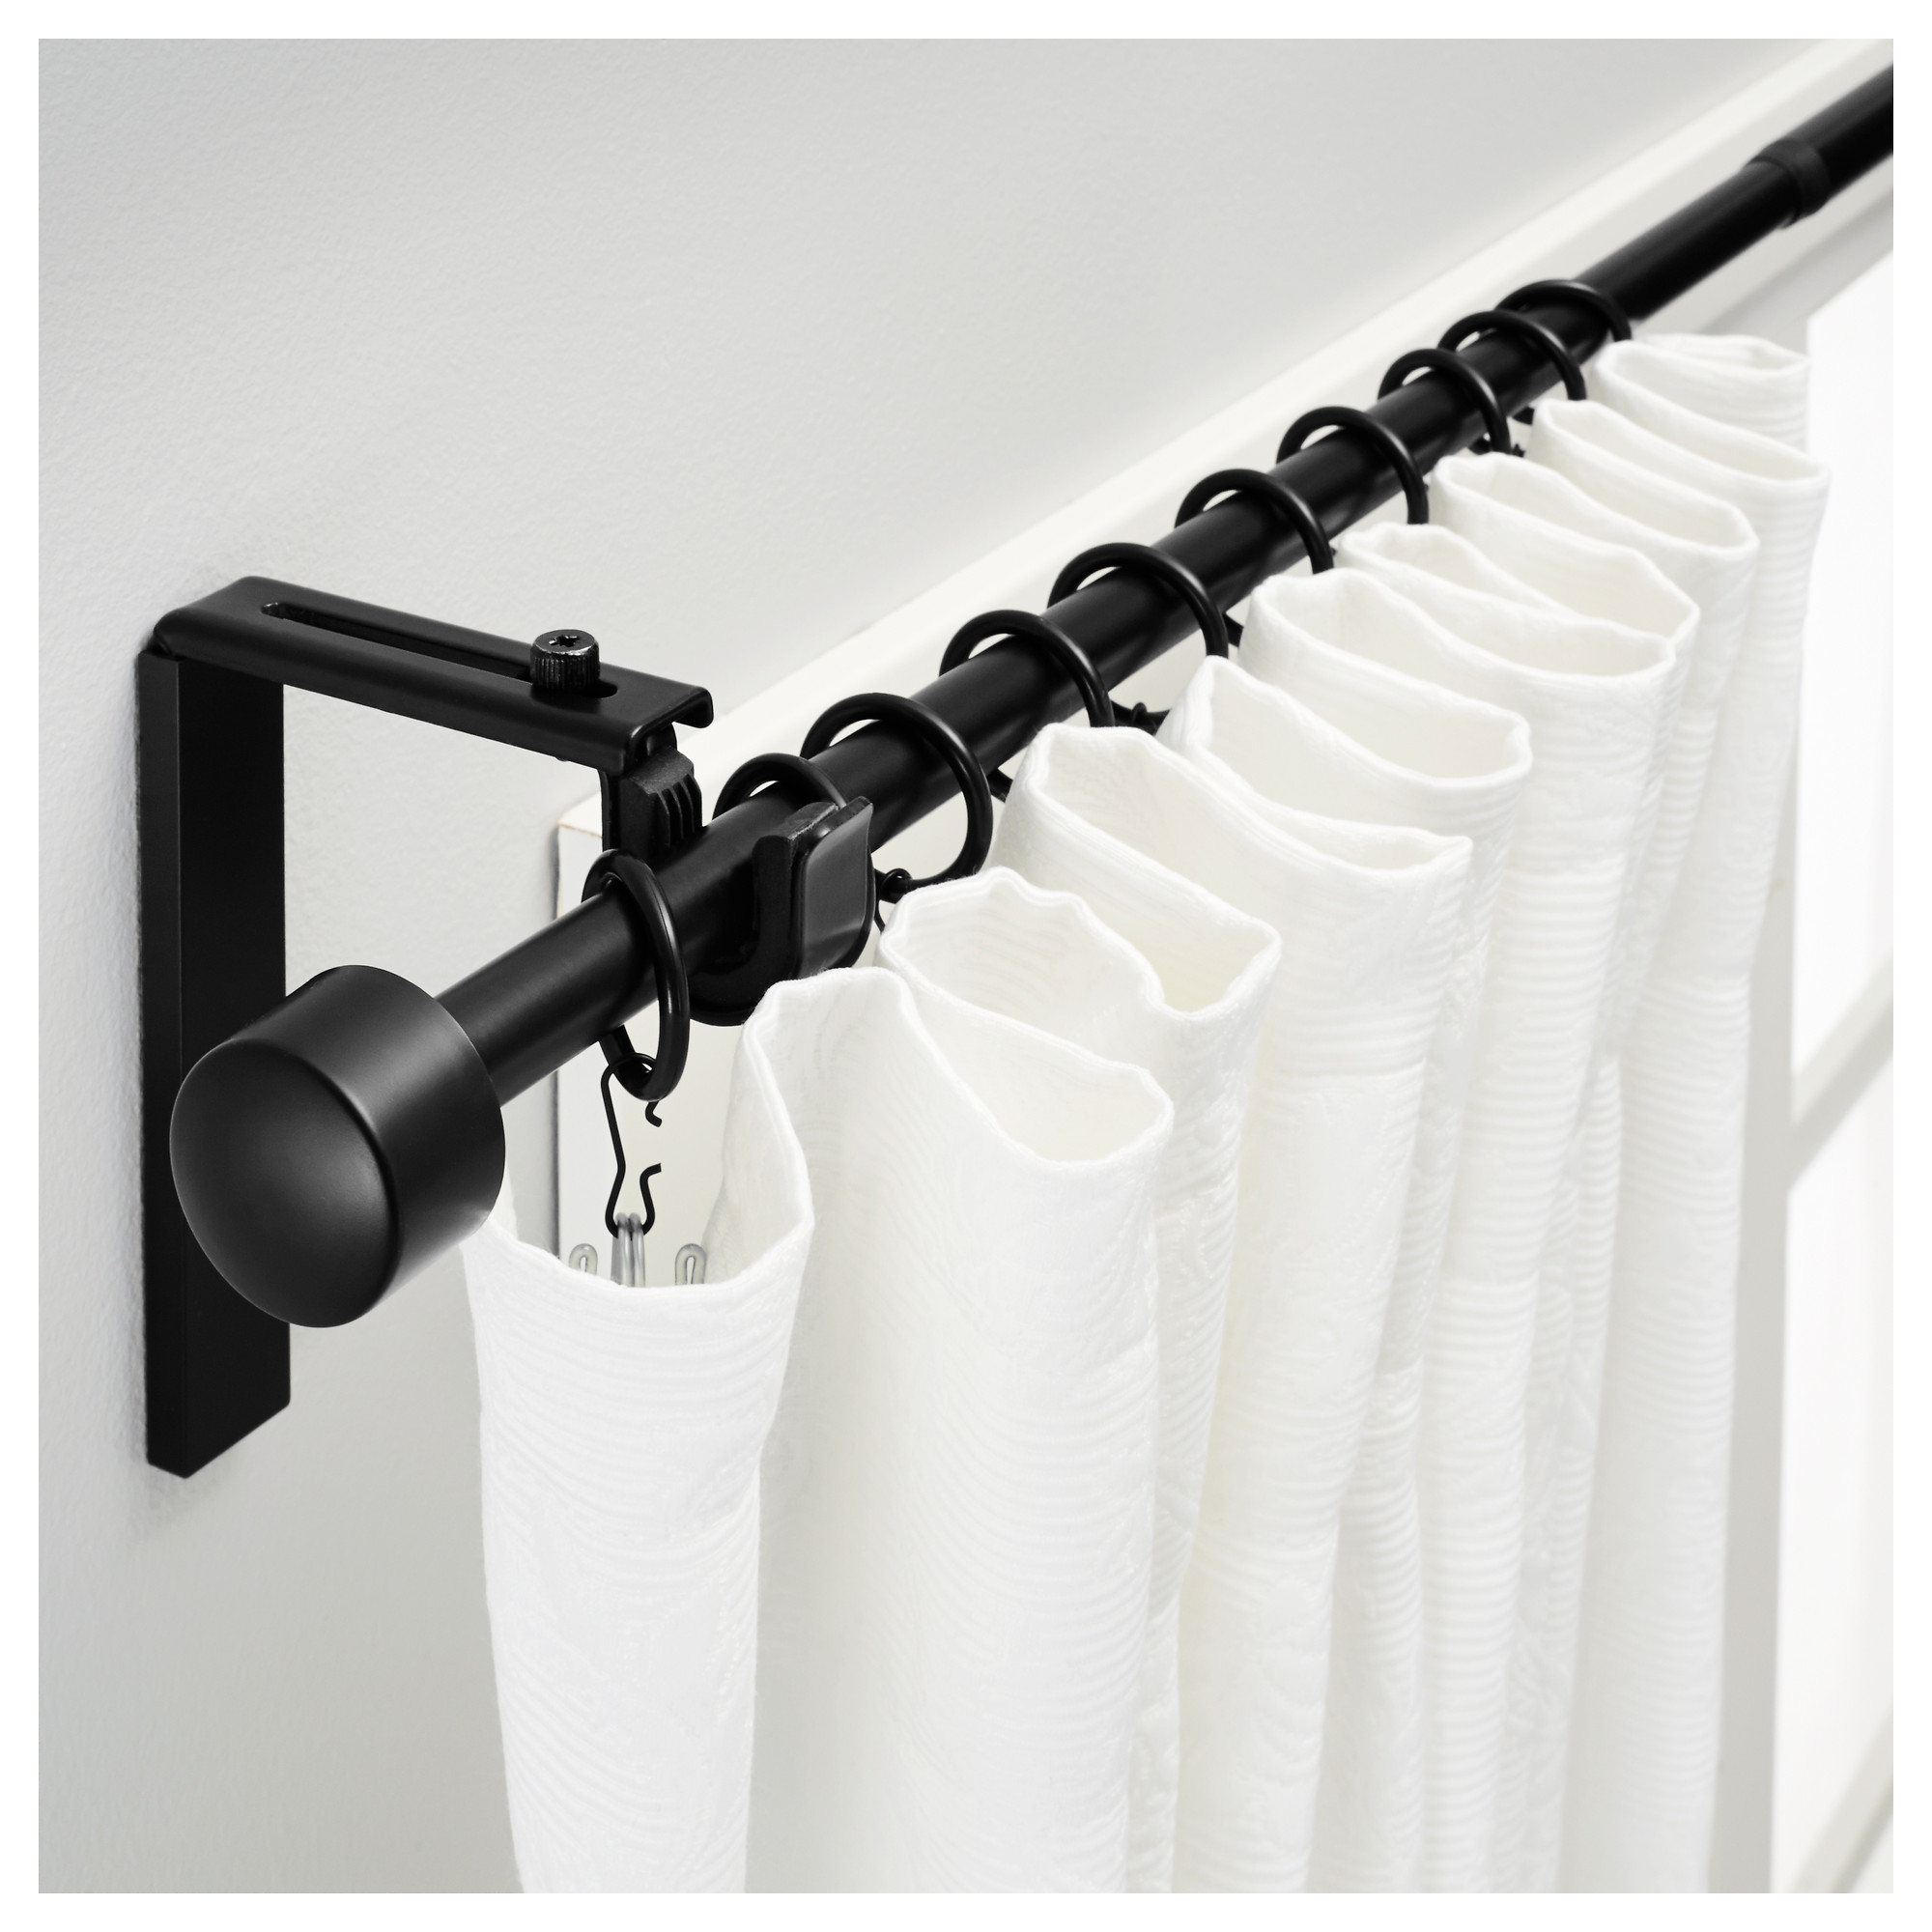 Captivating ikea curtain rods for home decor ideas with ikea double curtain rod and ceiling curtain rods ikea